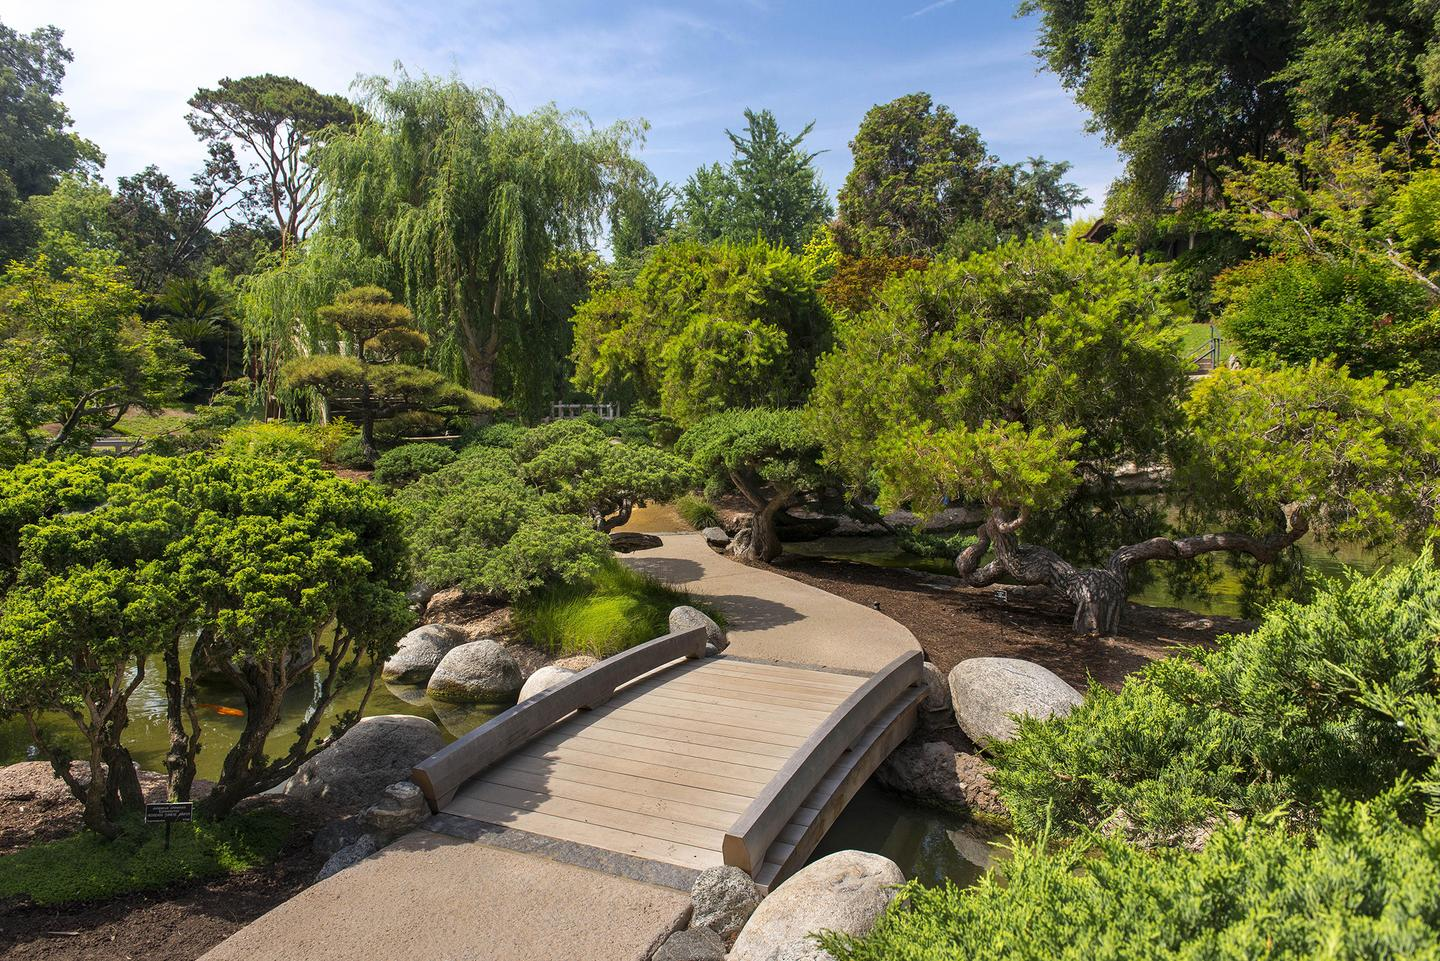 Japanese Gardens At The Huntington Library Projects Portfolio